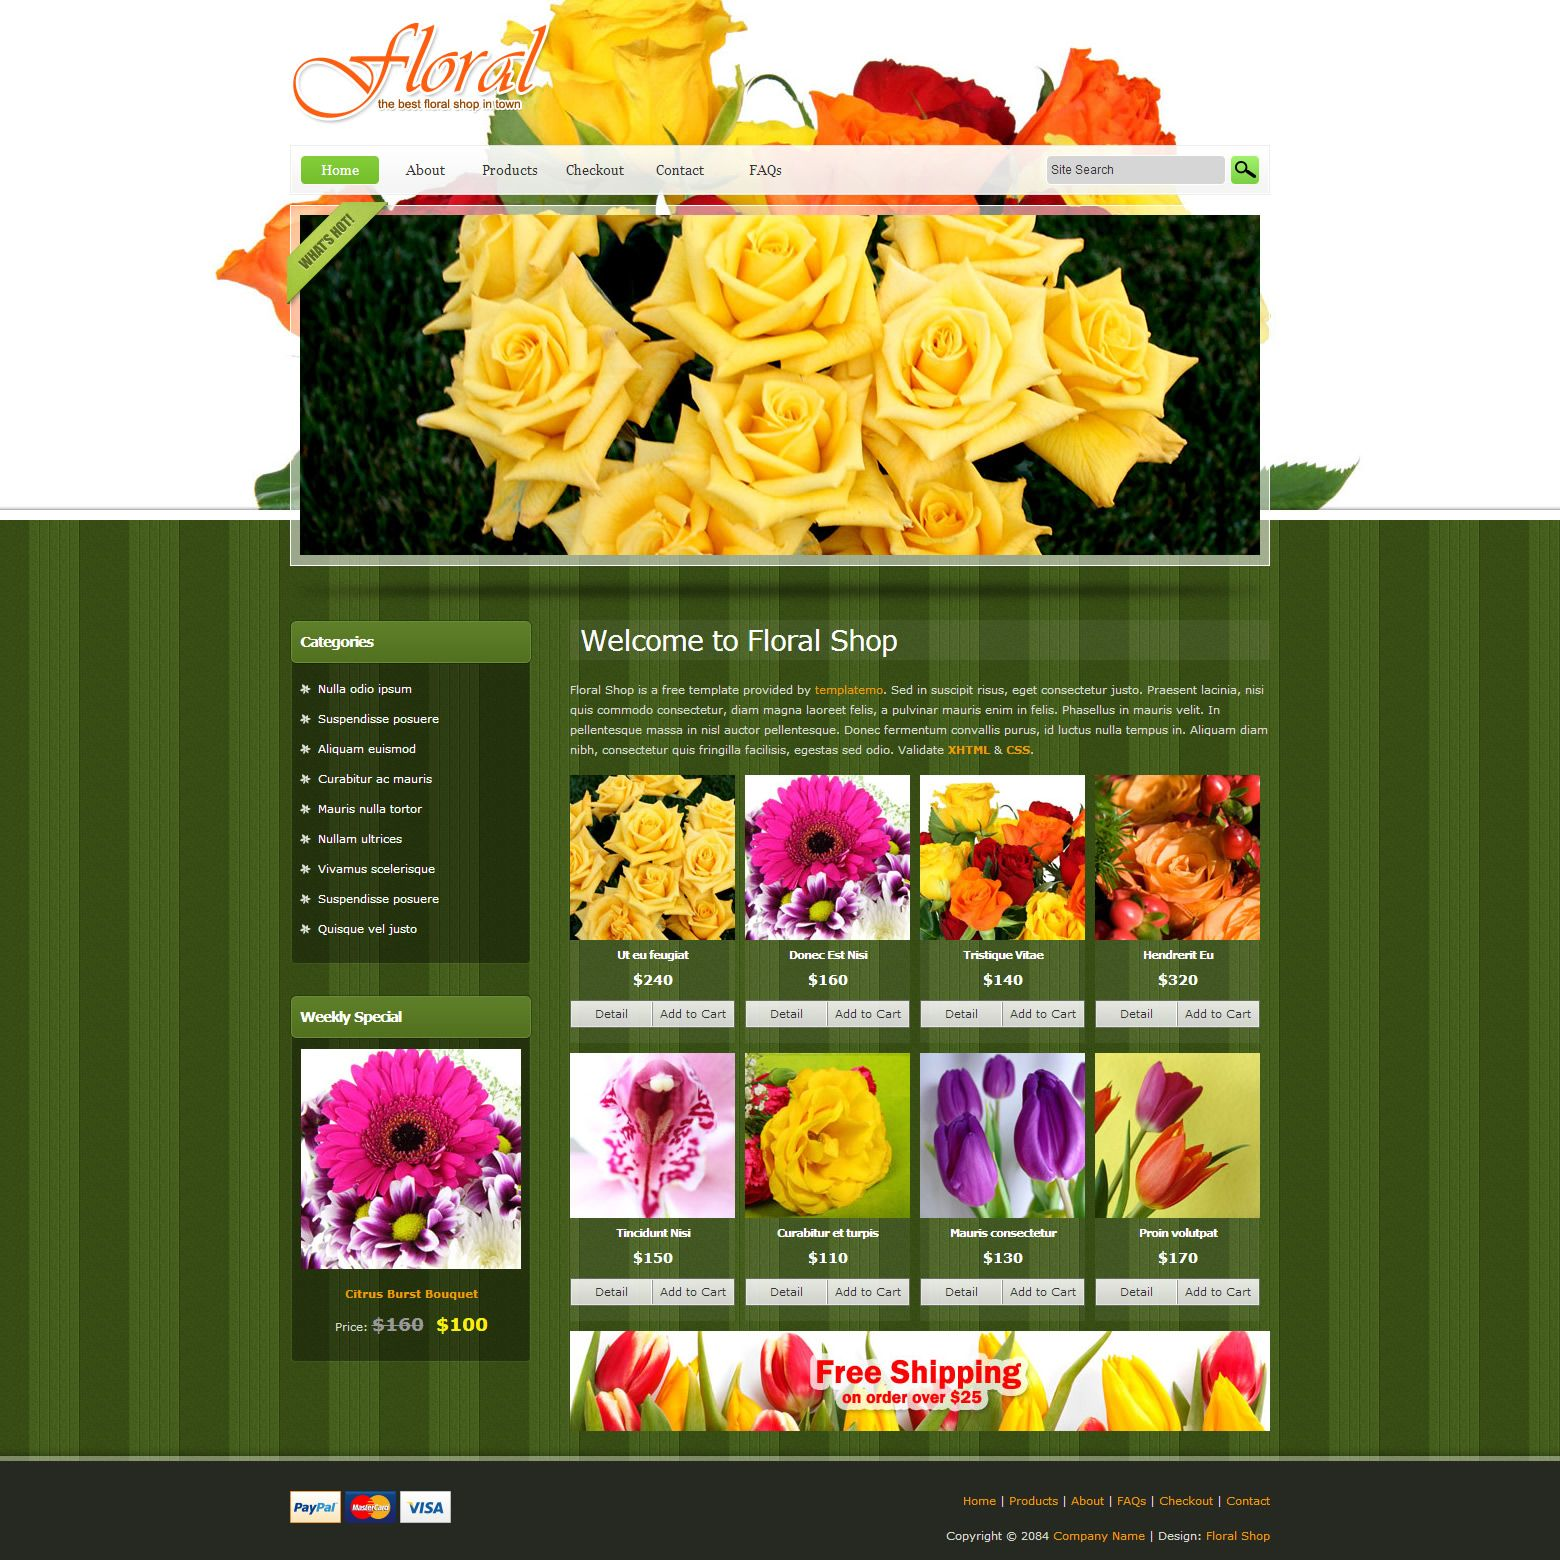 Floral Shop Is Free Website Template For Ecommerce Stores Or Online - Free ecommerce website templates shopping cart